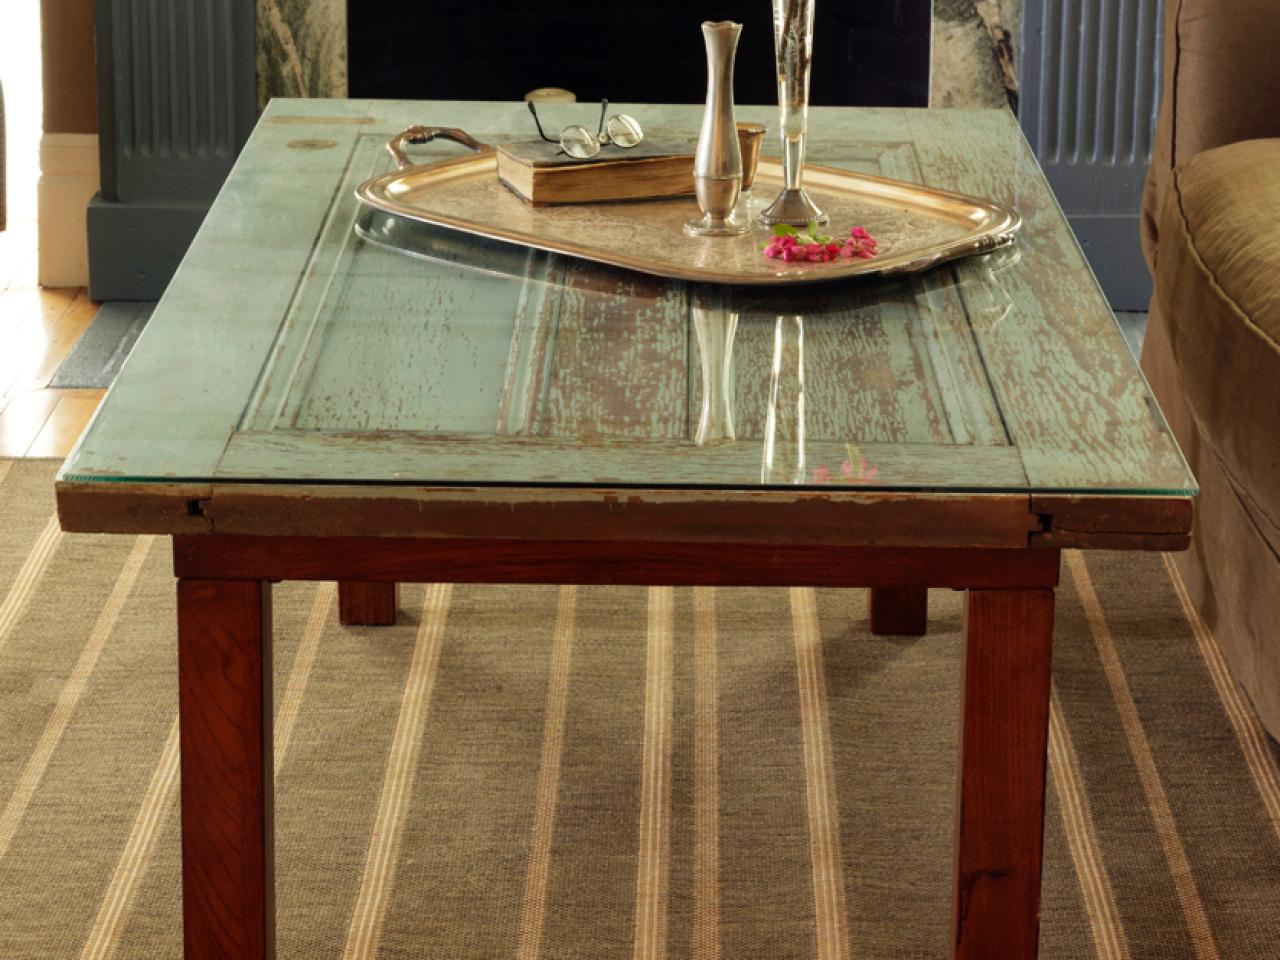 how to repurpose a door into a coffee table | how-tos | diy